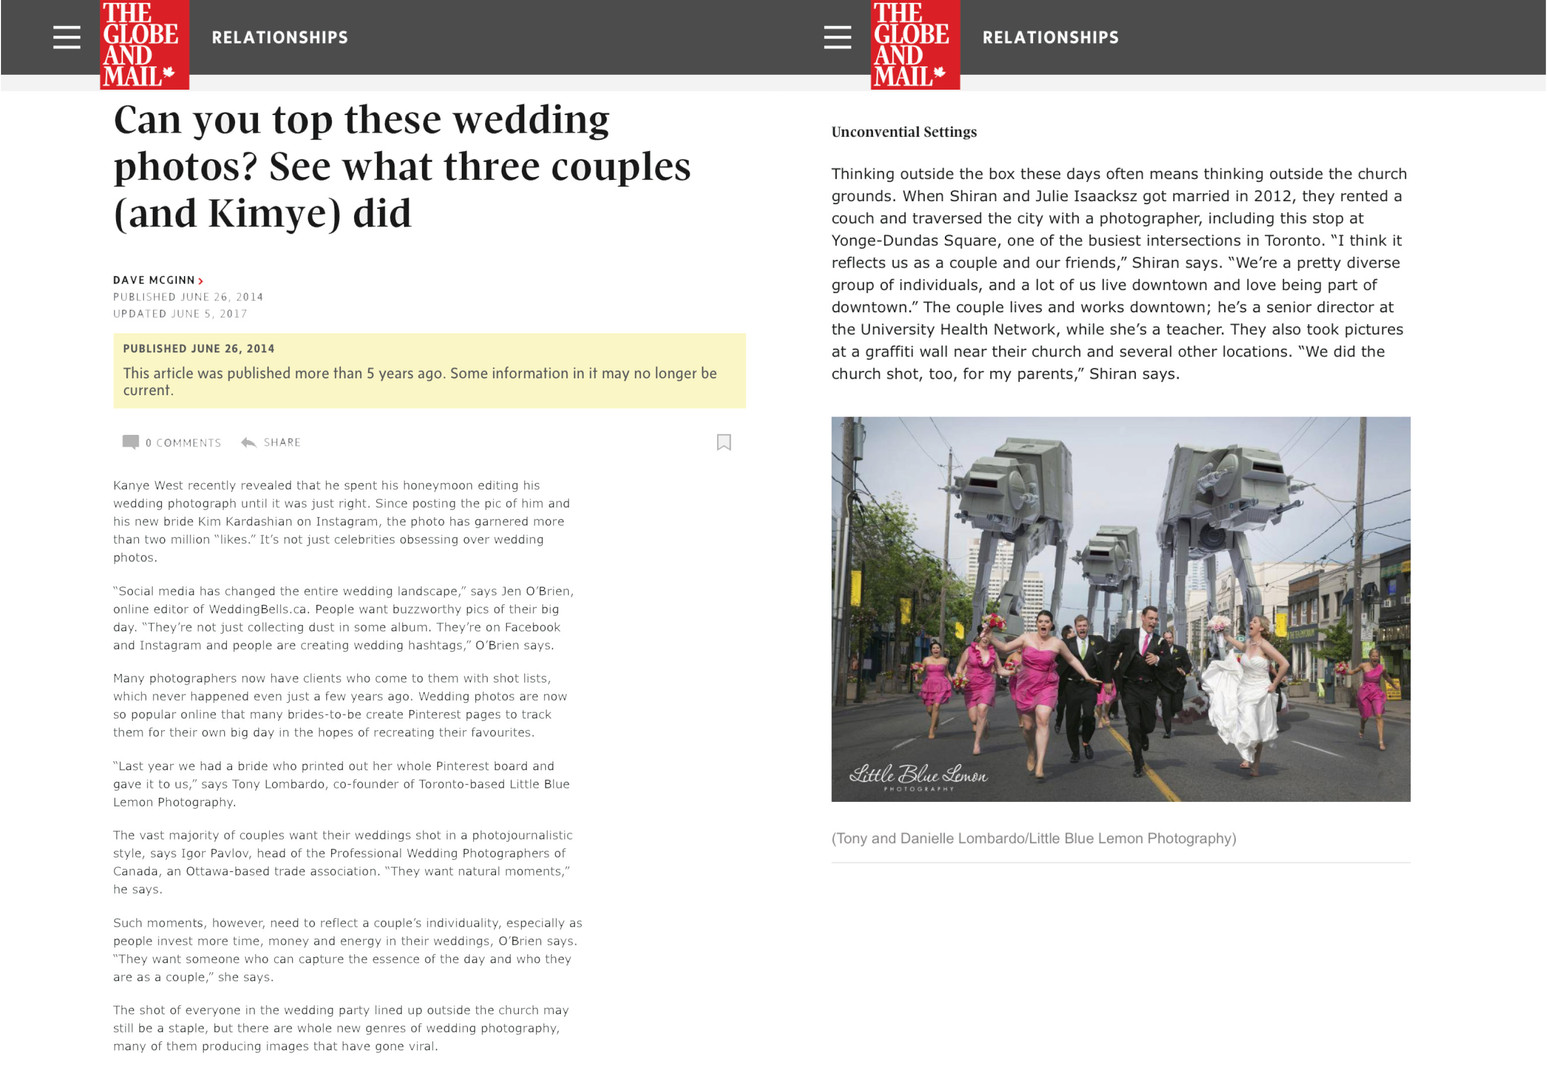 Top Wedding Photographer Toronto LittleBlueLemon Star Wars Wedding Photo in Globe and Mail